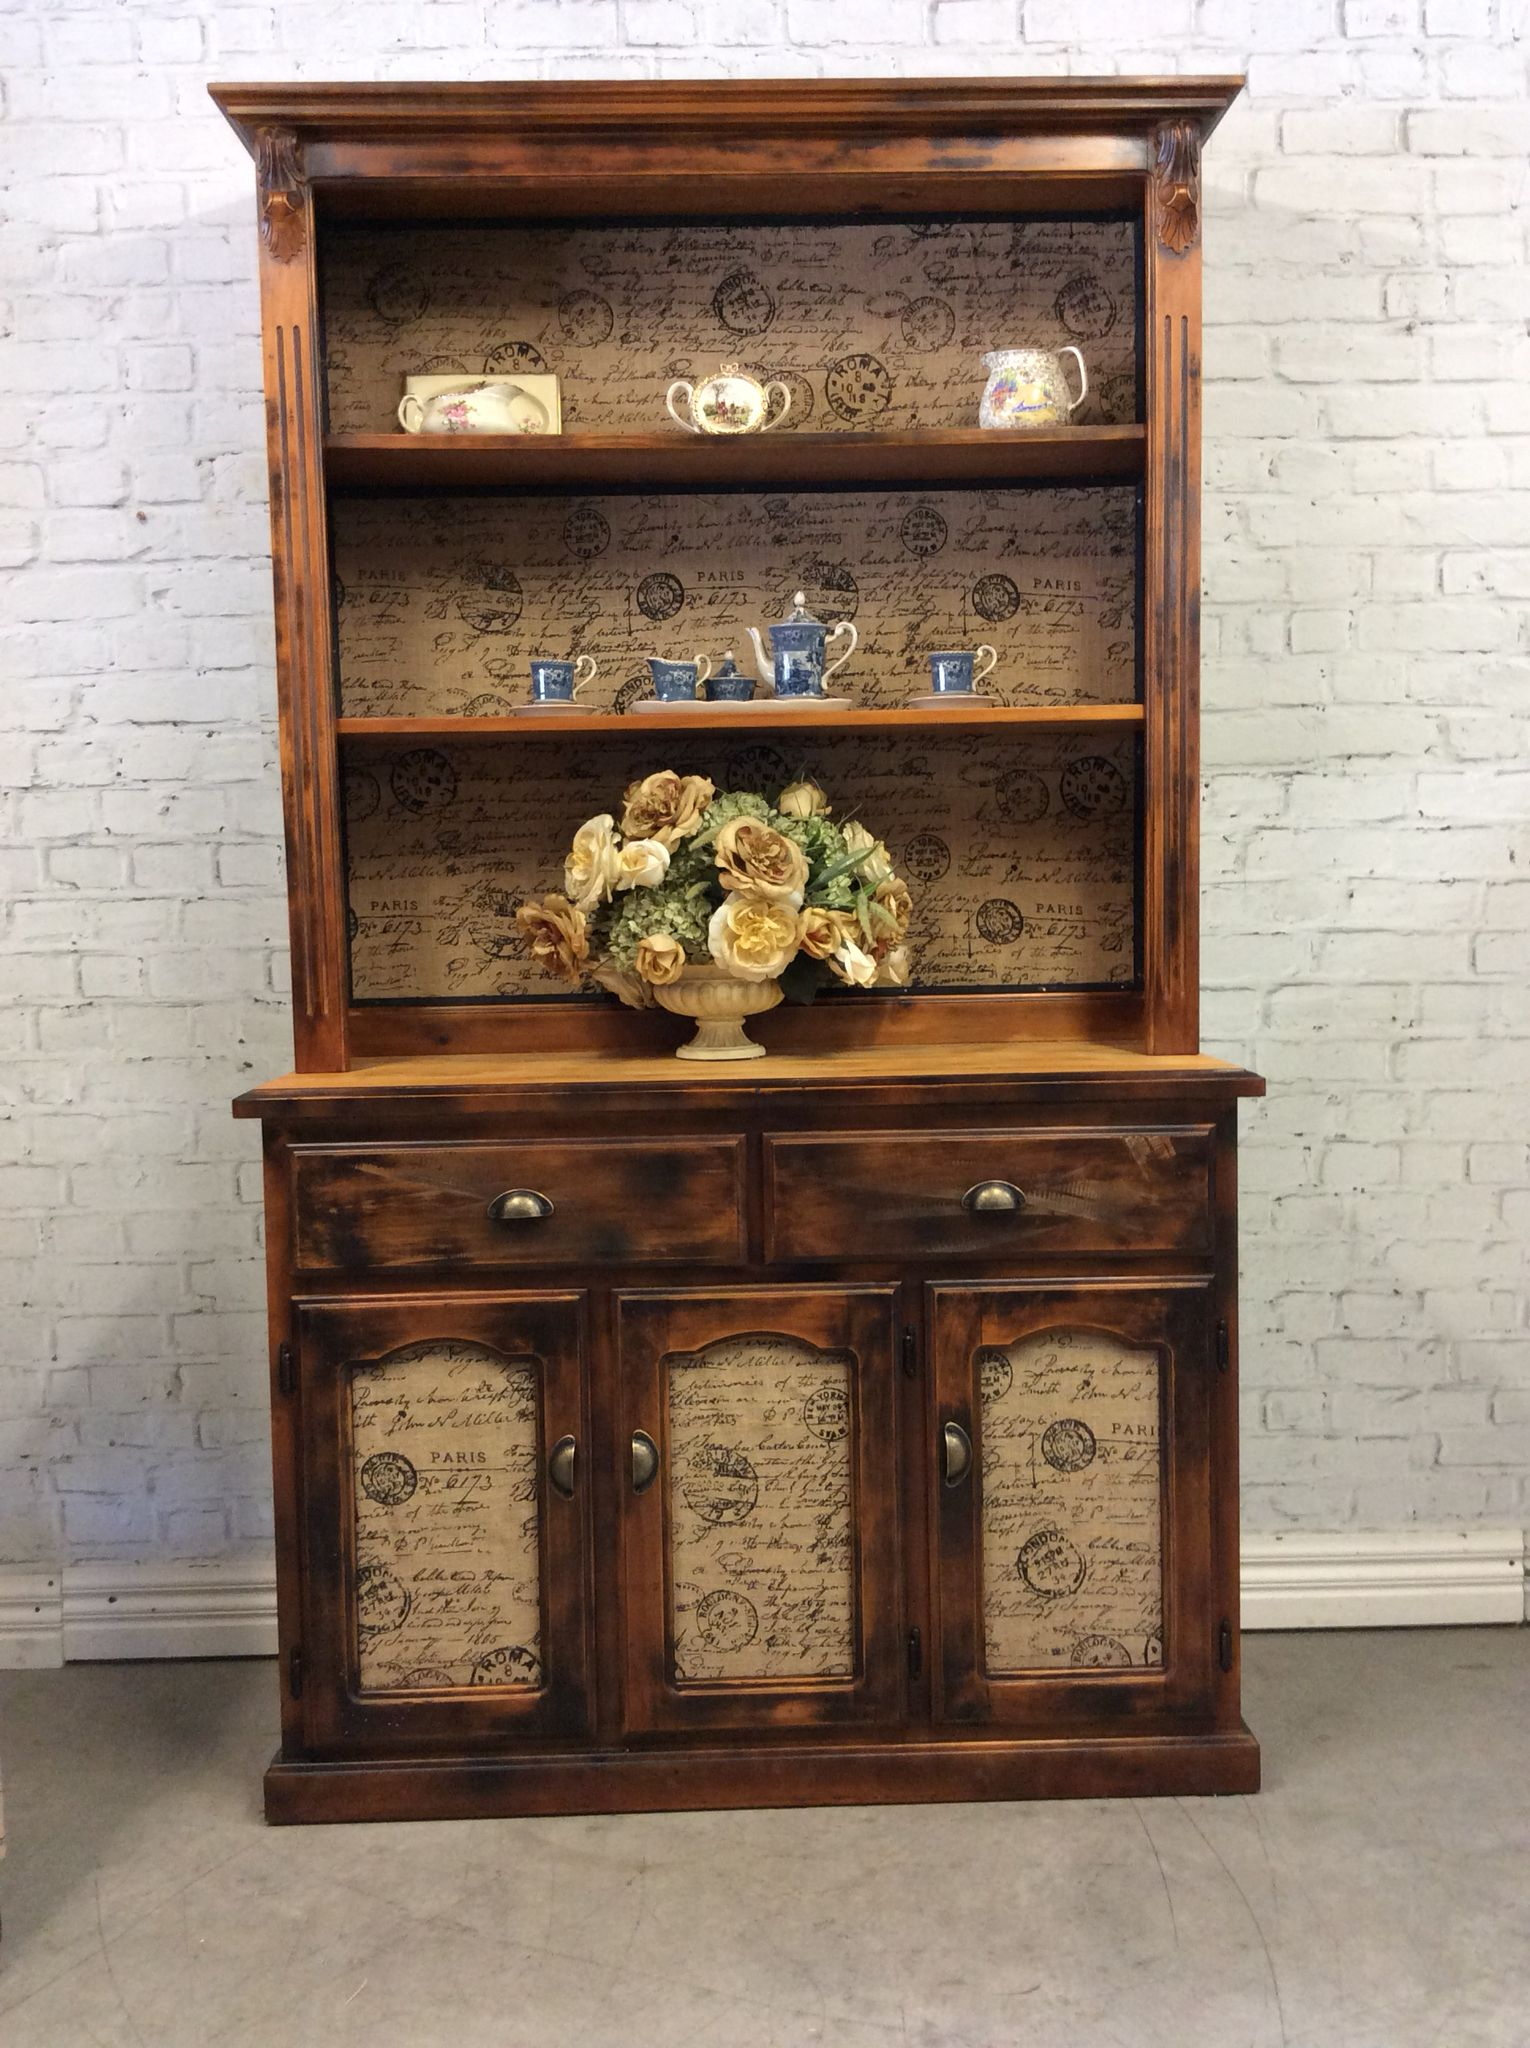 Attirant Reclaimed French Provincial Industrial Style Kitchen Dresser Buffet Hutch